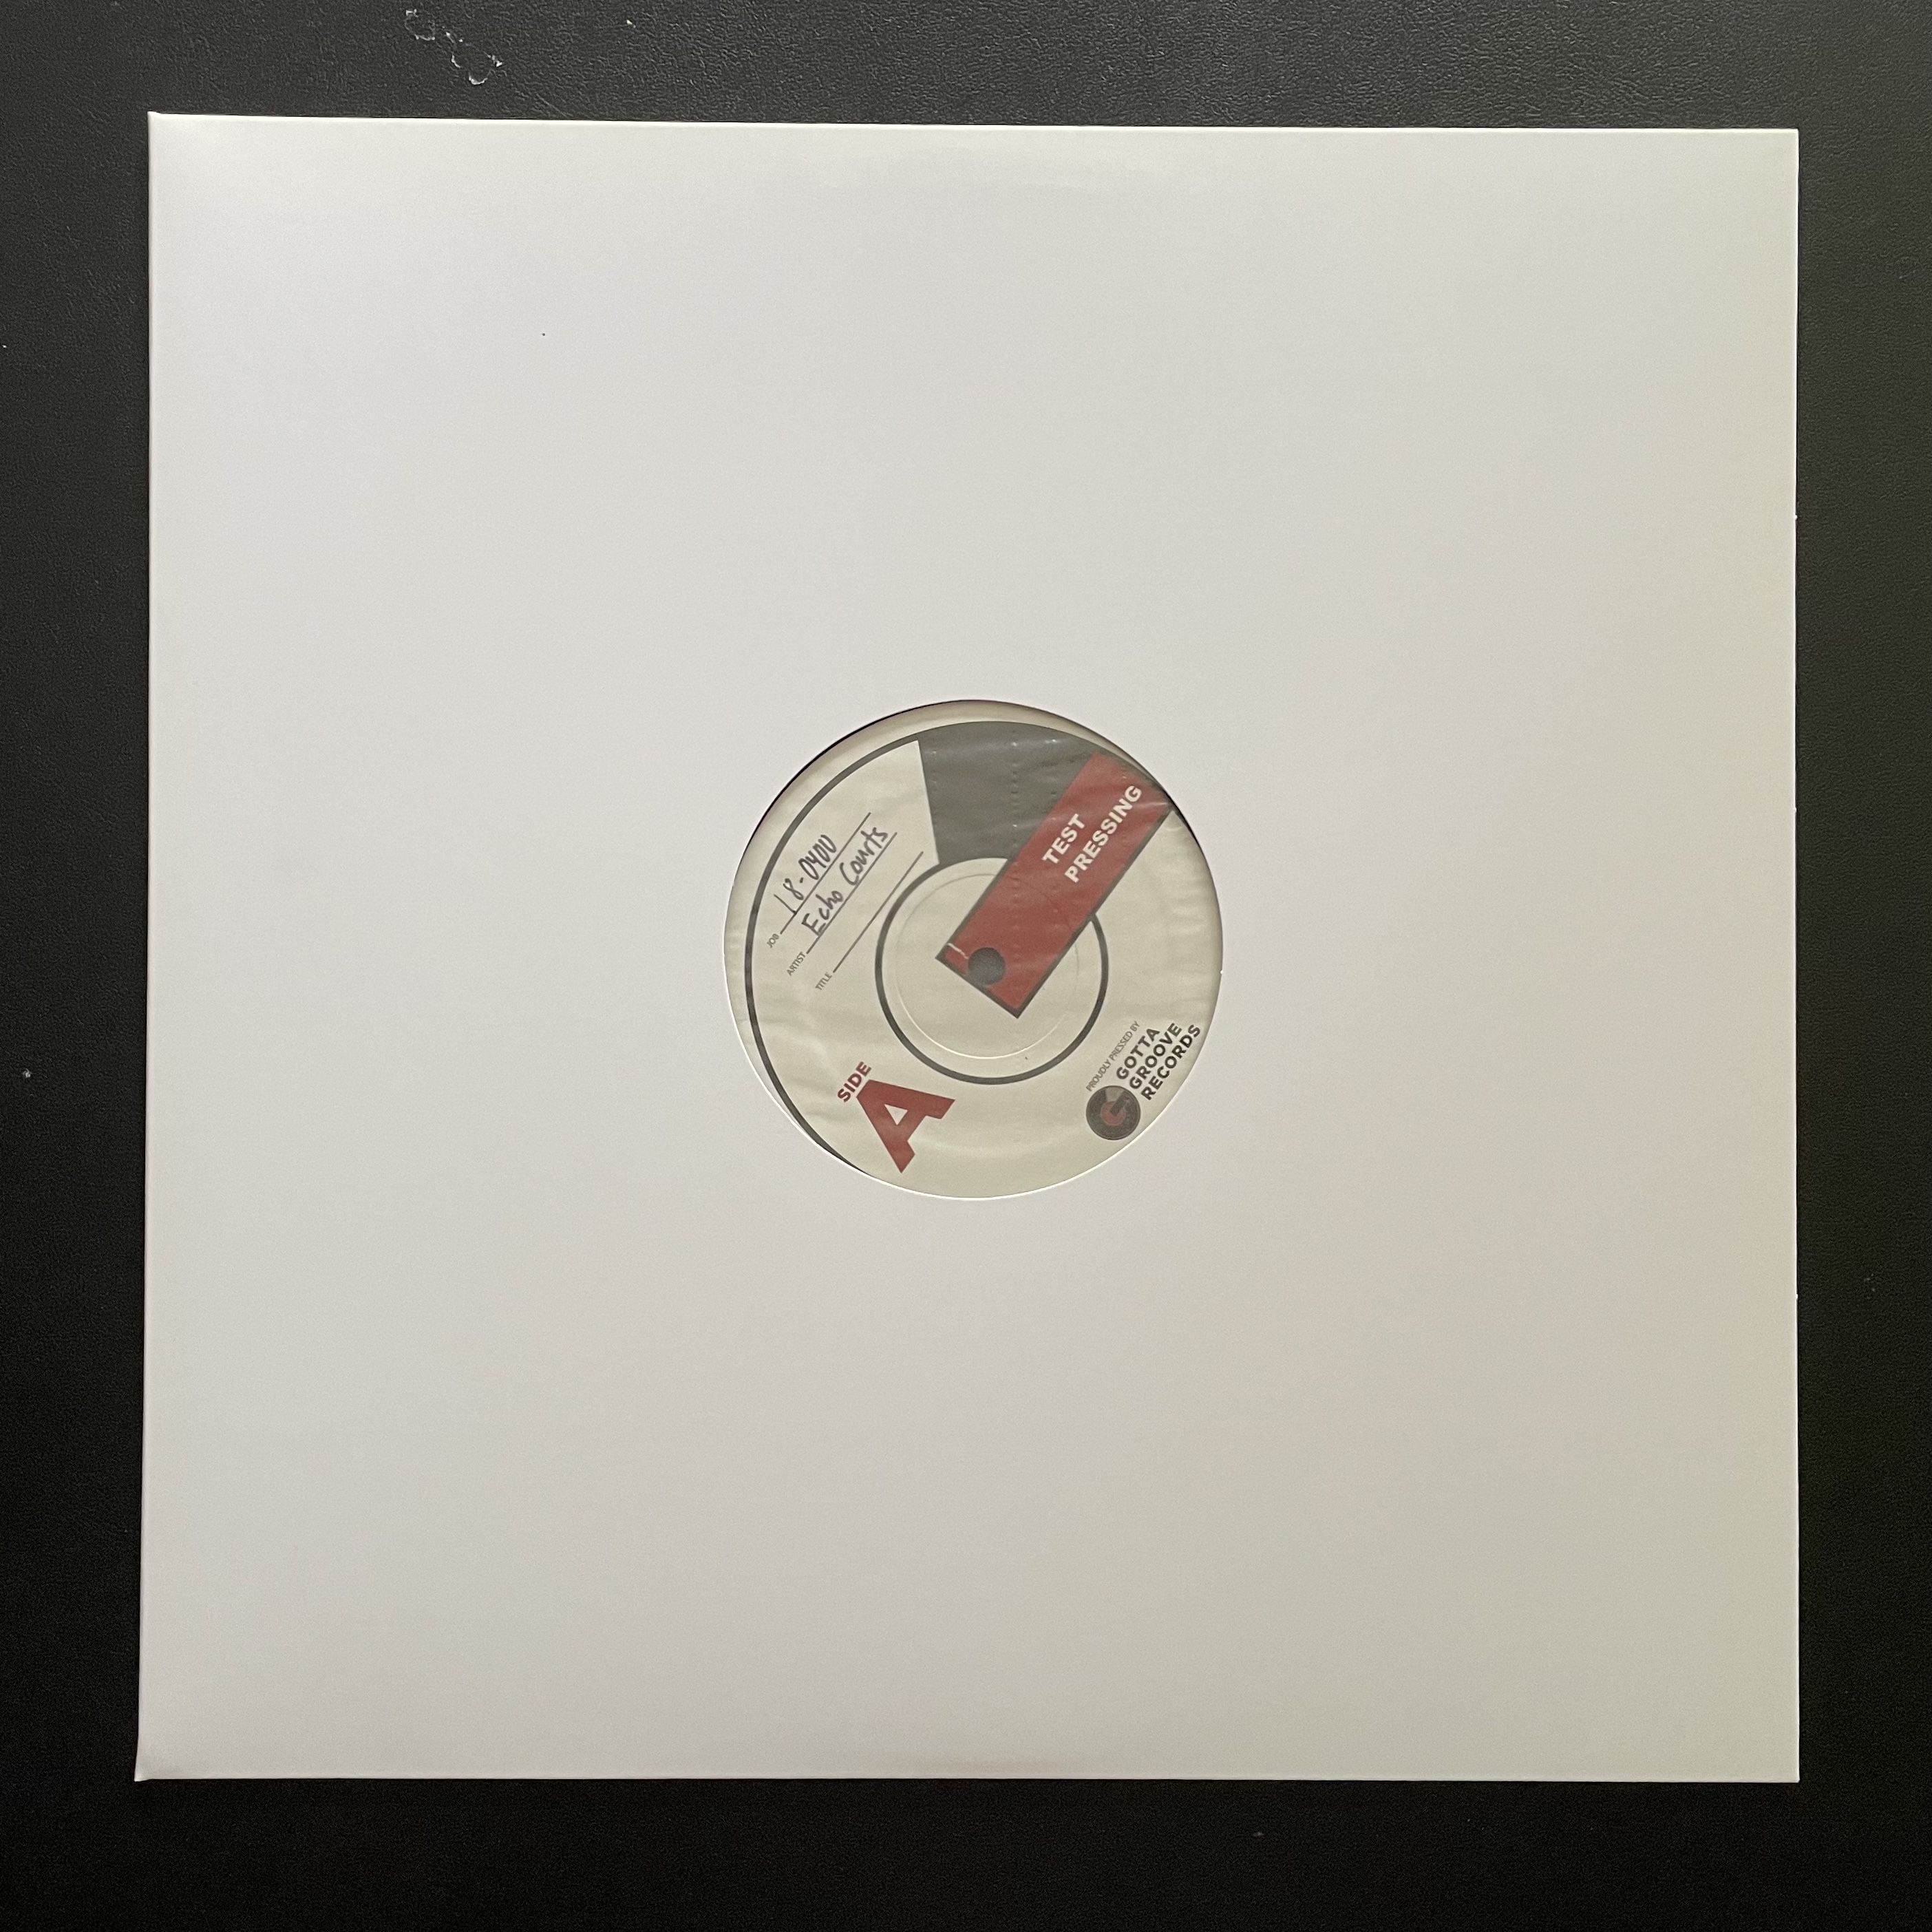 Echo Courts - Room With A View [TEST PRESS]